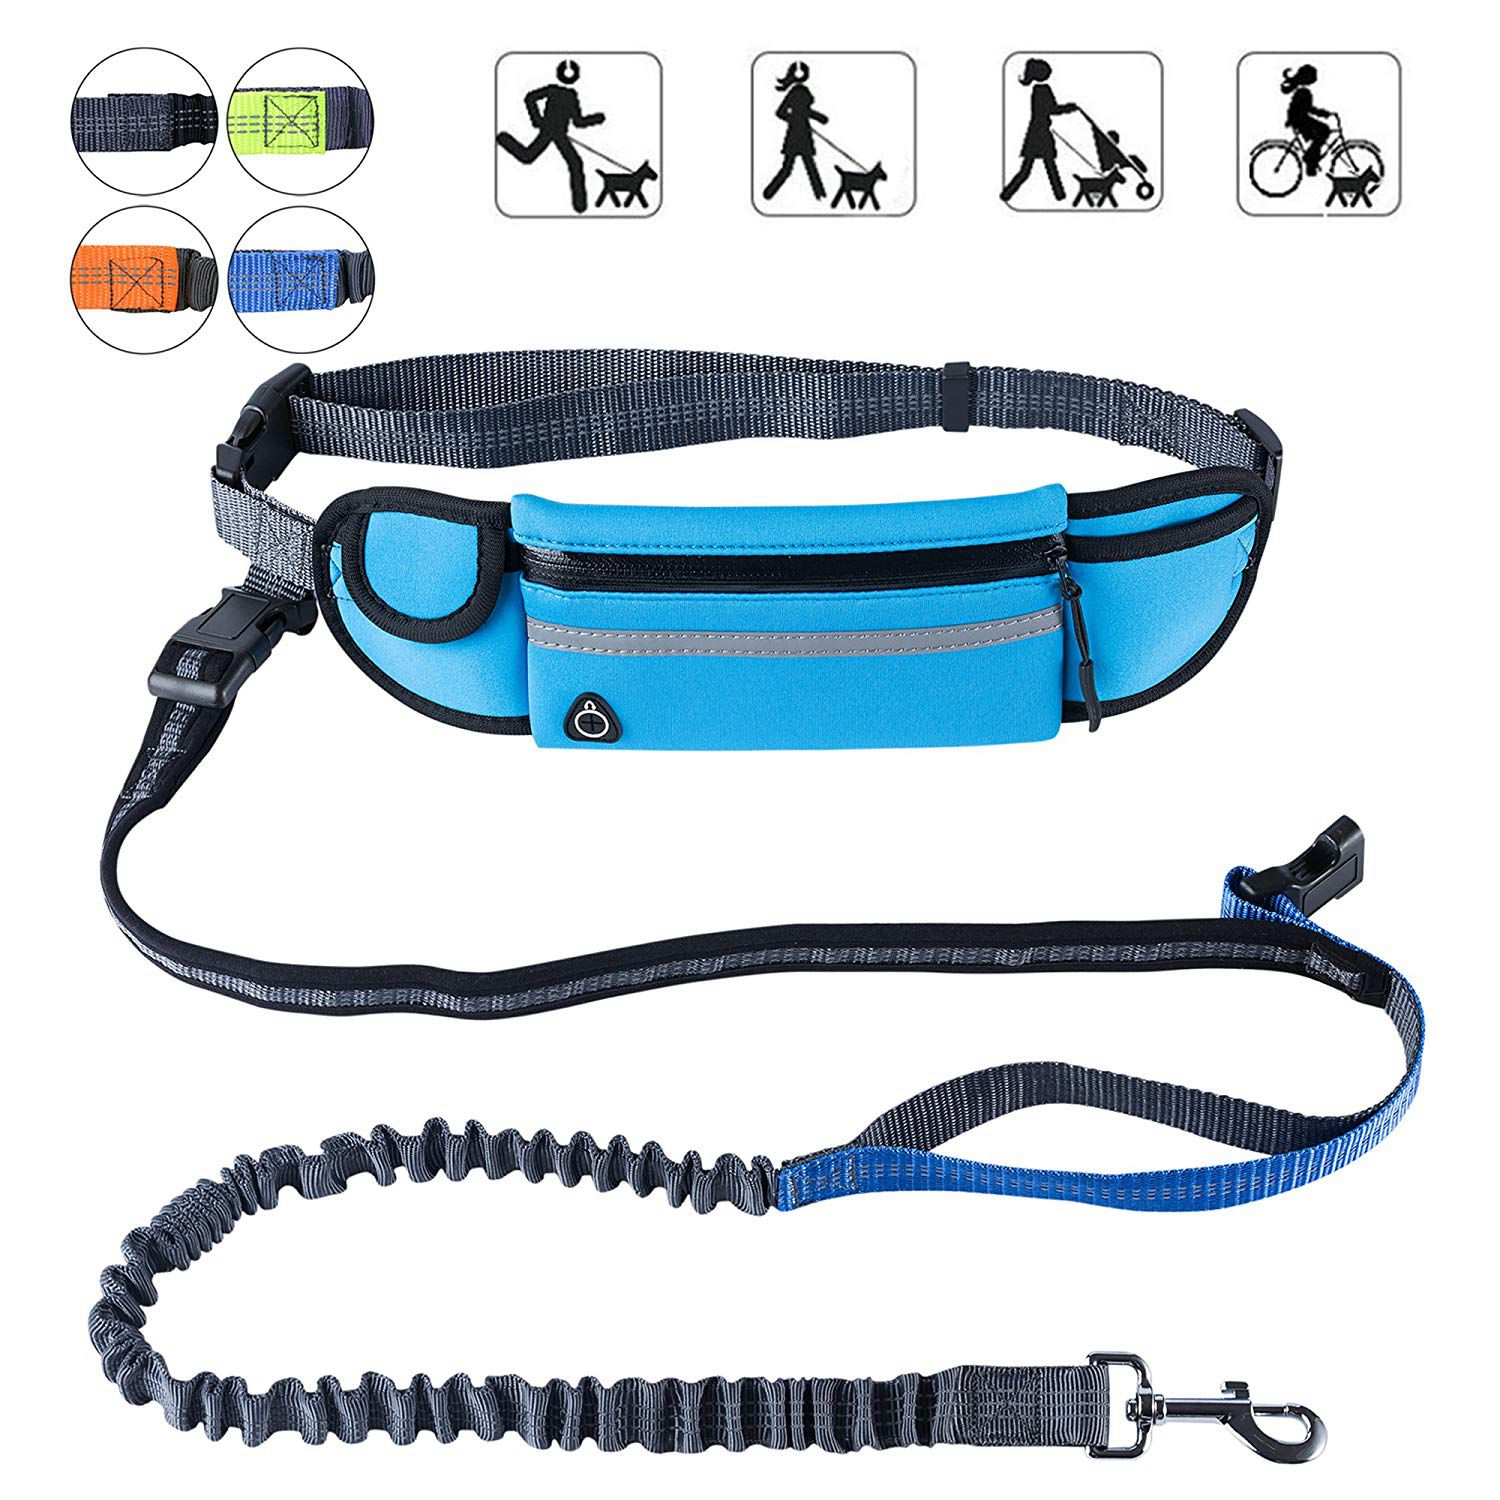 Hands Free Dog Running Leash With Waist Pocket Adjustable Belt Shock Absorbing Bungee Fits Up To 45 Inch Waist